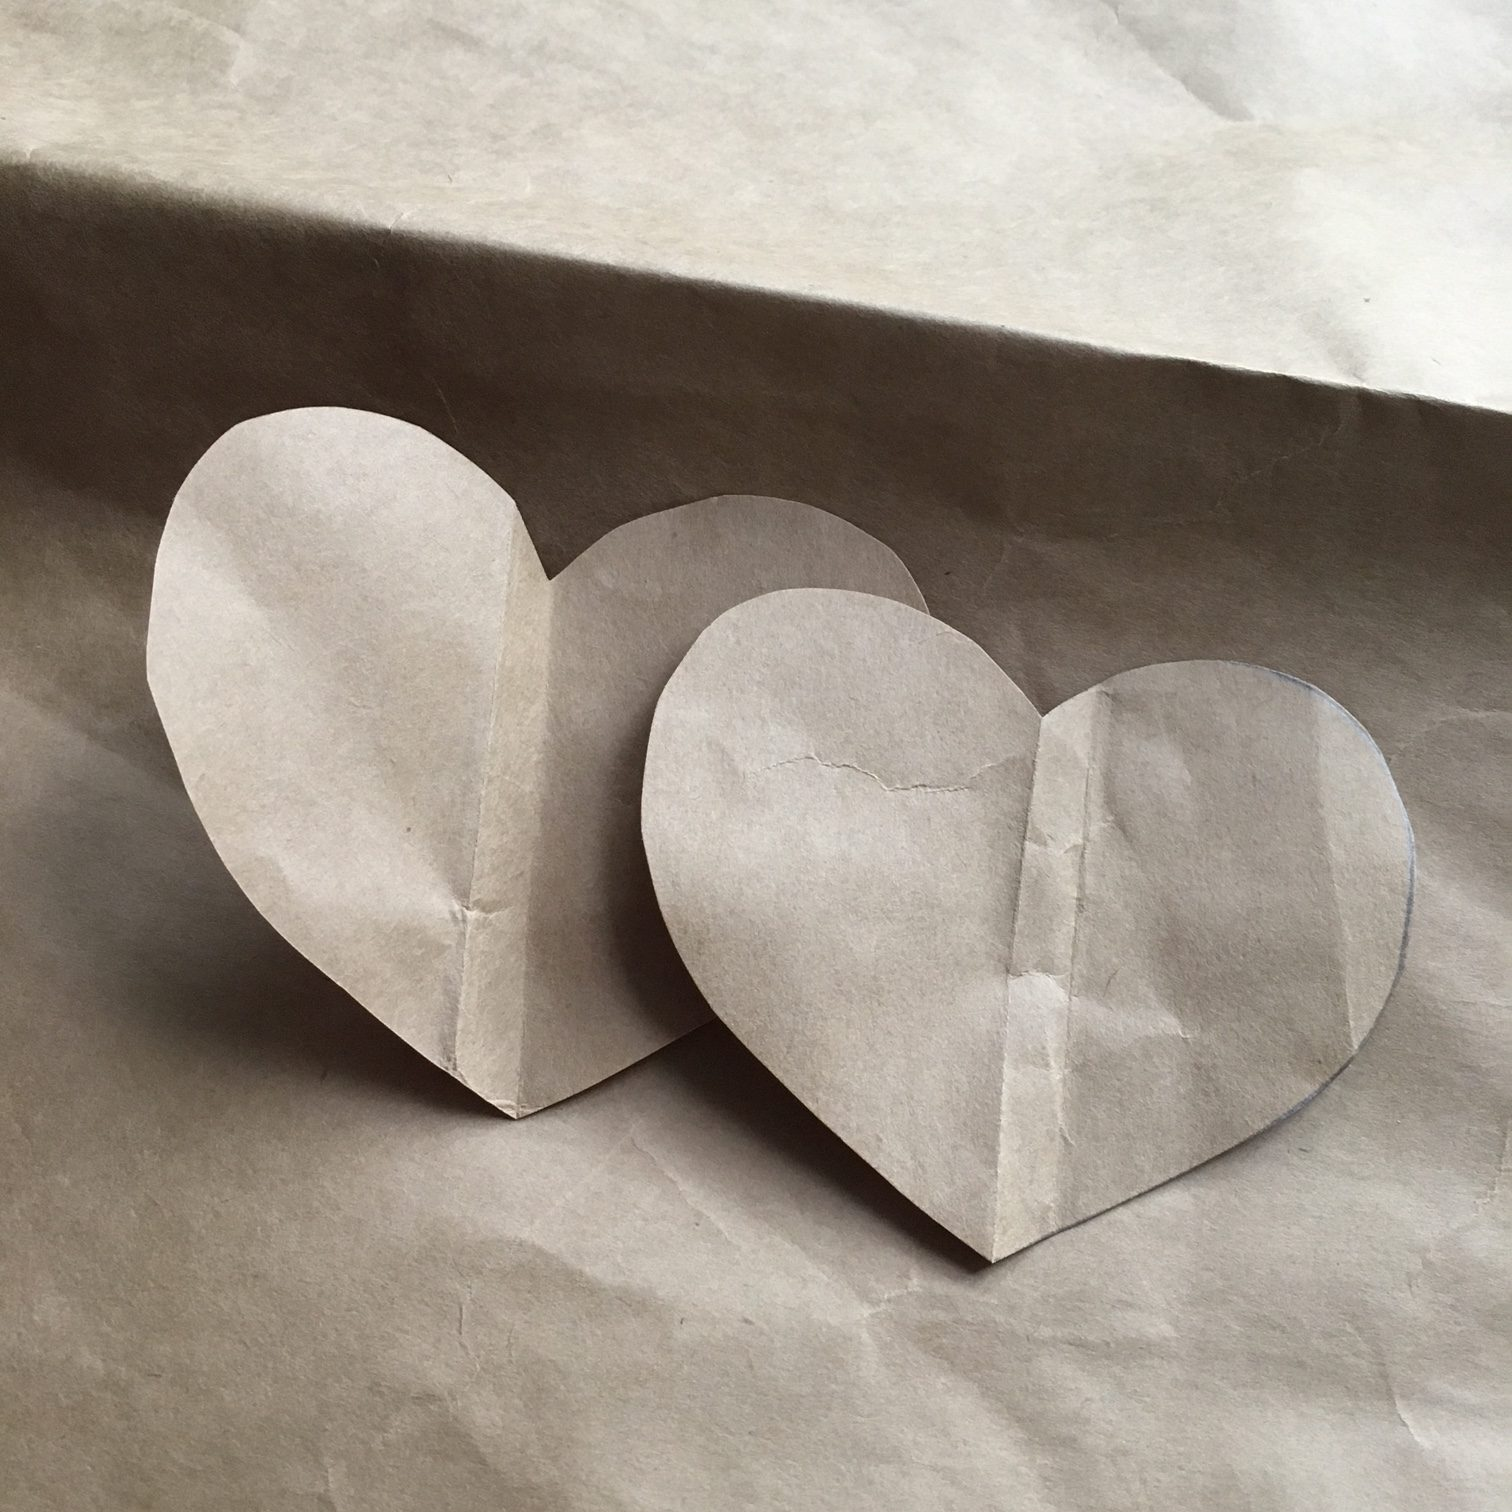 how to make brown bag paper hearts - first cut two heart shapes the same size